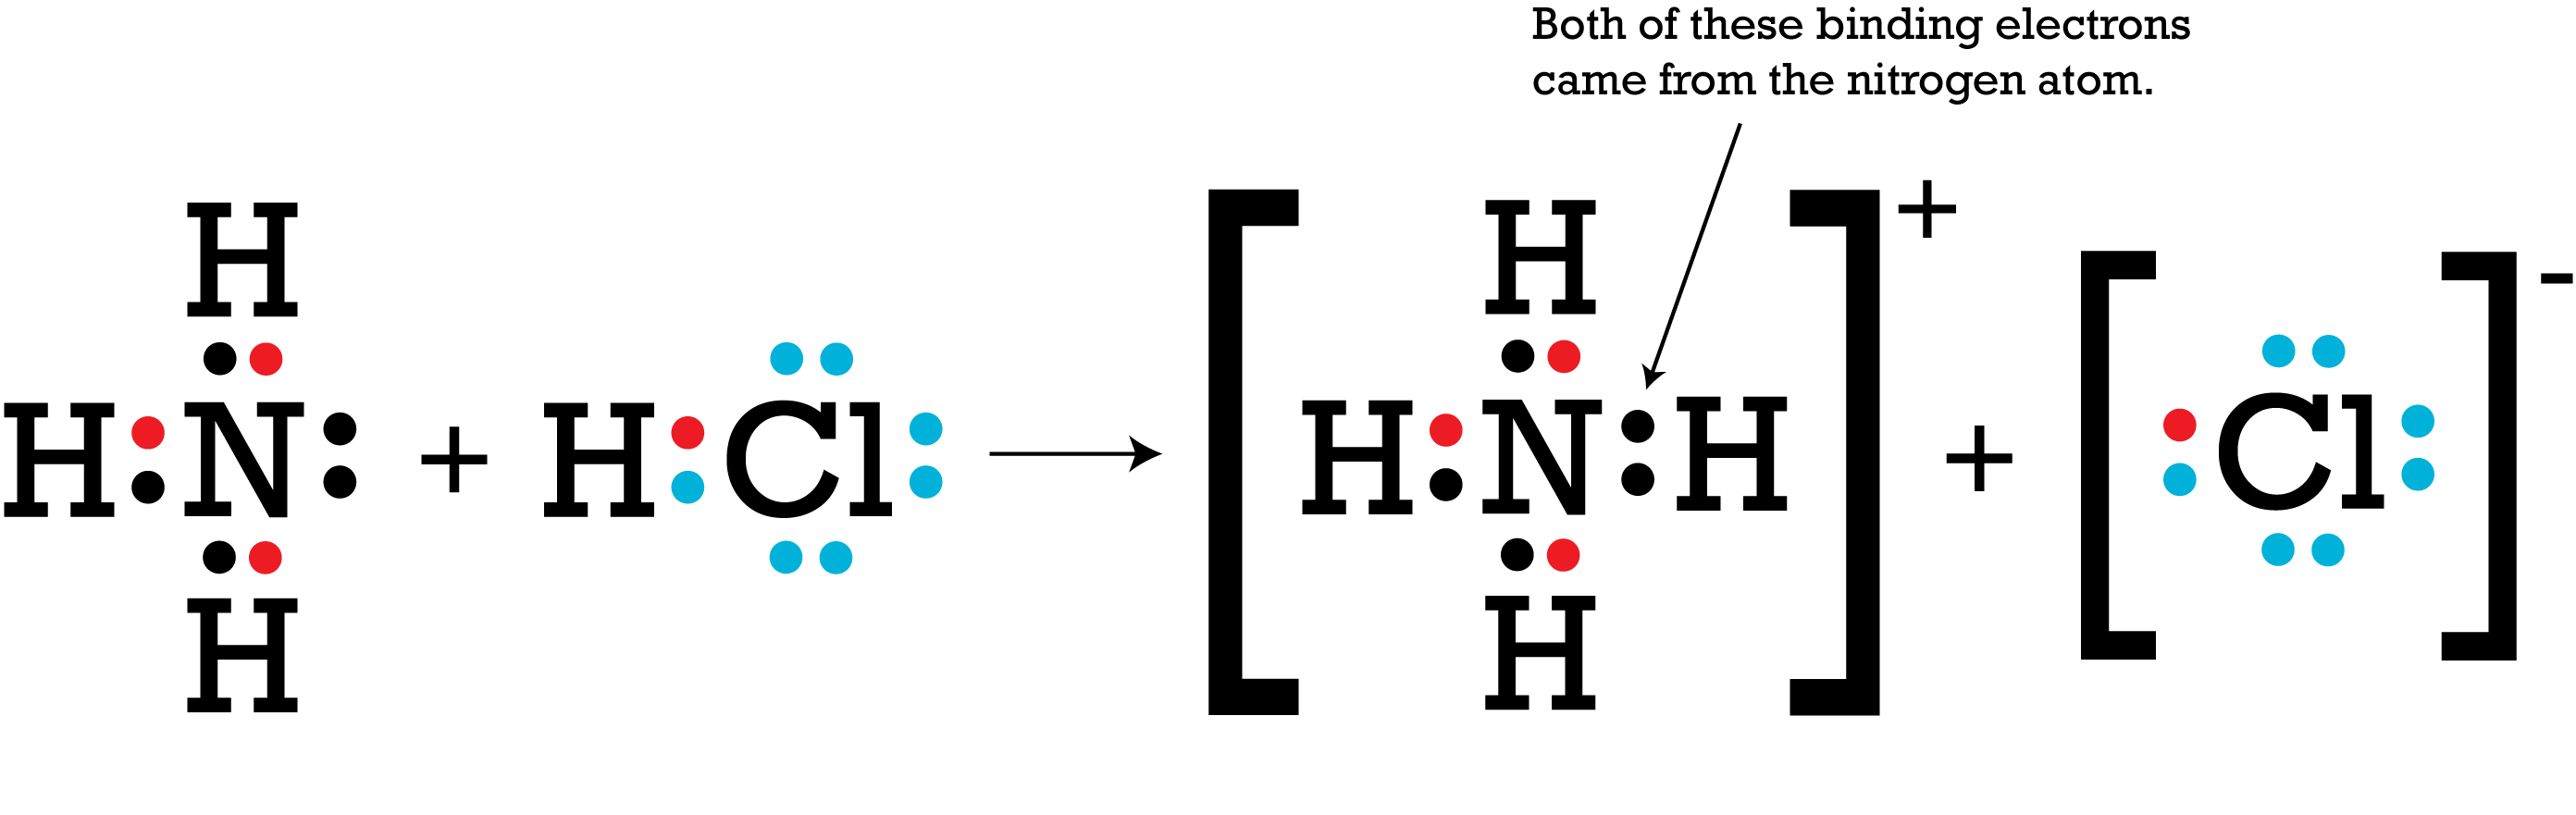 electron dot diagram of ammonium ion ge washer wiring the covalent bond ck 12 foundation